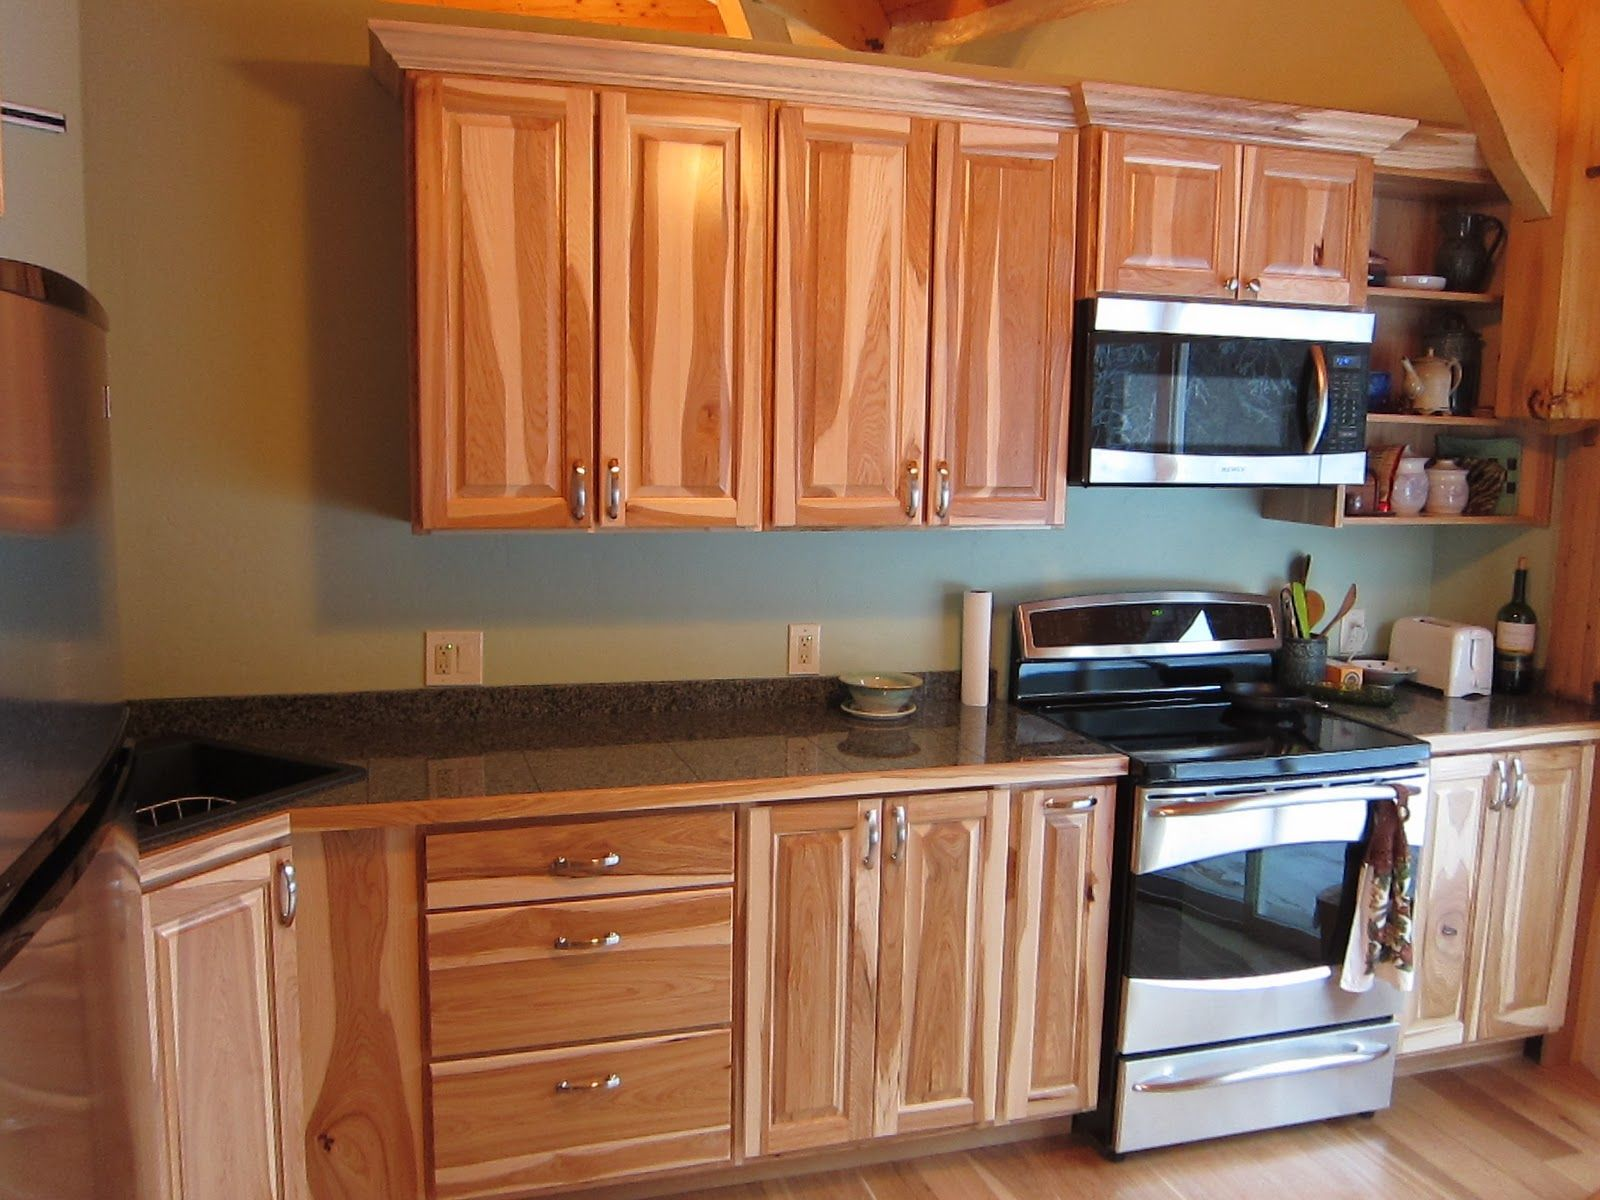 Hickory Shaker Style Kitchen Cabinets Backyard Kitchens At Yahoo Search Results My